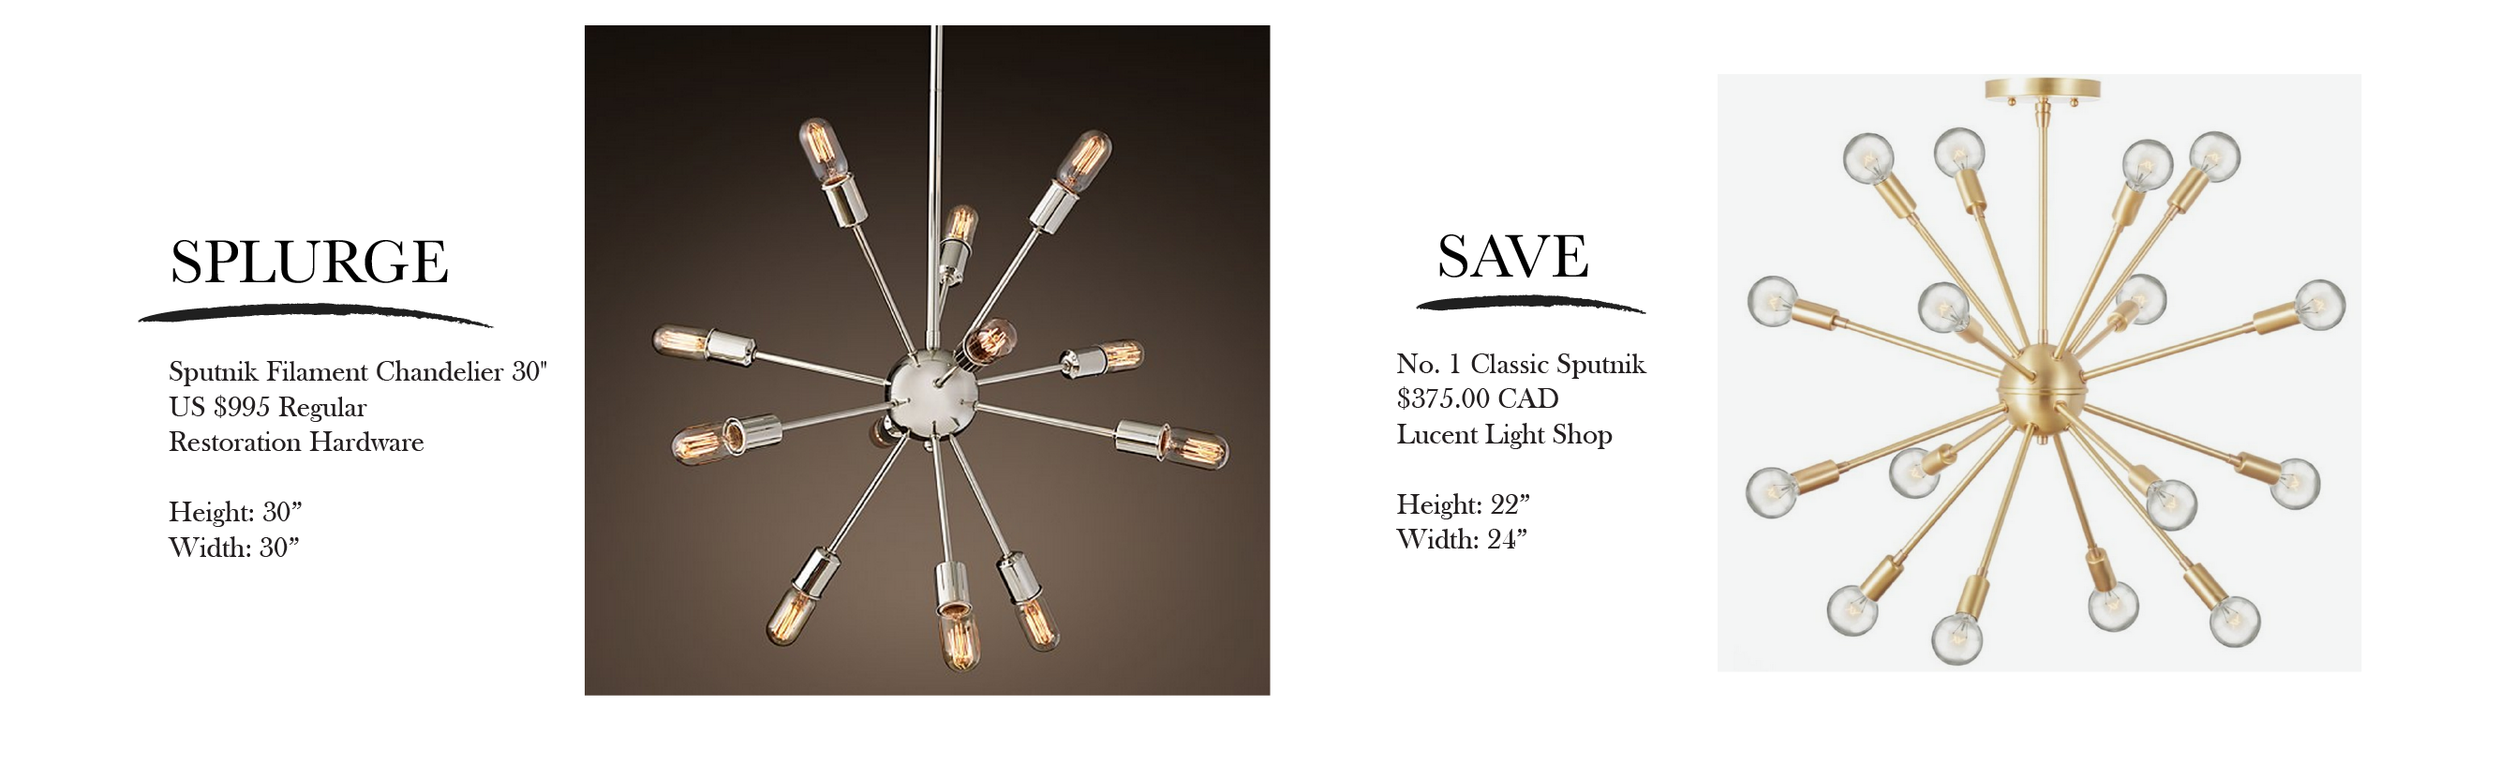 The Classic Sputnik from Lucent Light Shop also comes in other finishes at different price points.